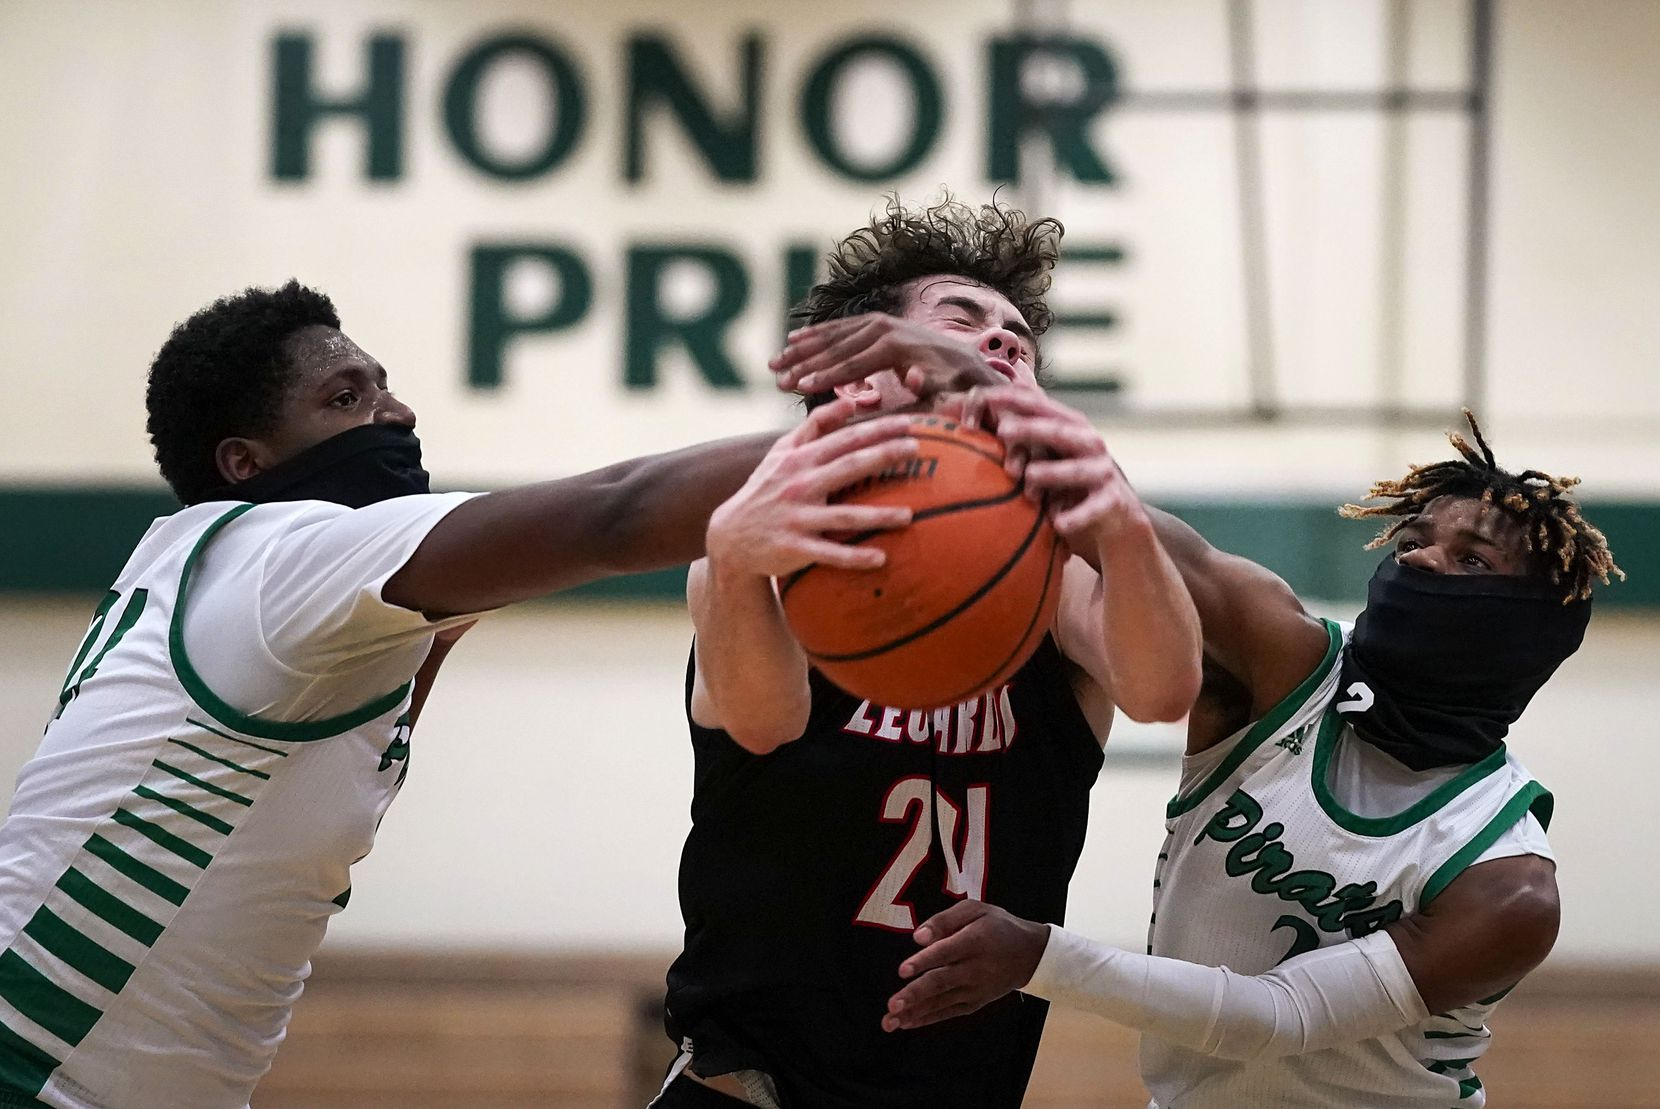 Mesquite Poteet forward Tavarius Hamilton (left) and guard Jeremiah Lynch (2) wear face coverings as they defend against Lovejoy guard Carson Holden (24) during a high school basketball game on Tuesday, Nov. 17, 2020, in Mesquite. (Smiley N. Pool/The Dallas Morning News)